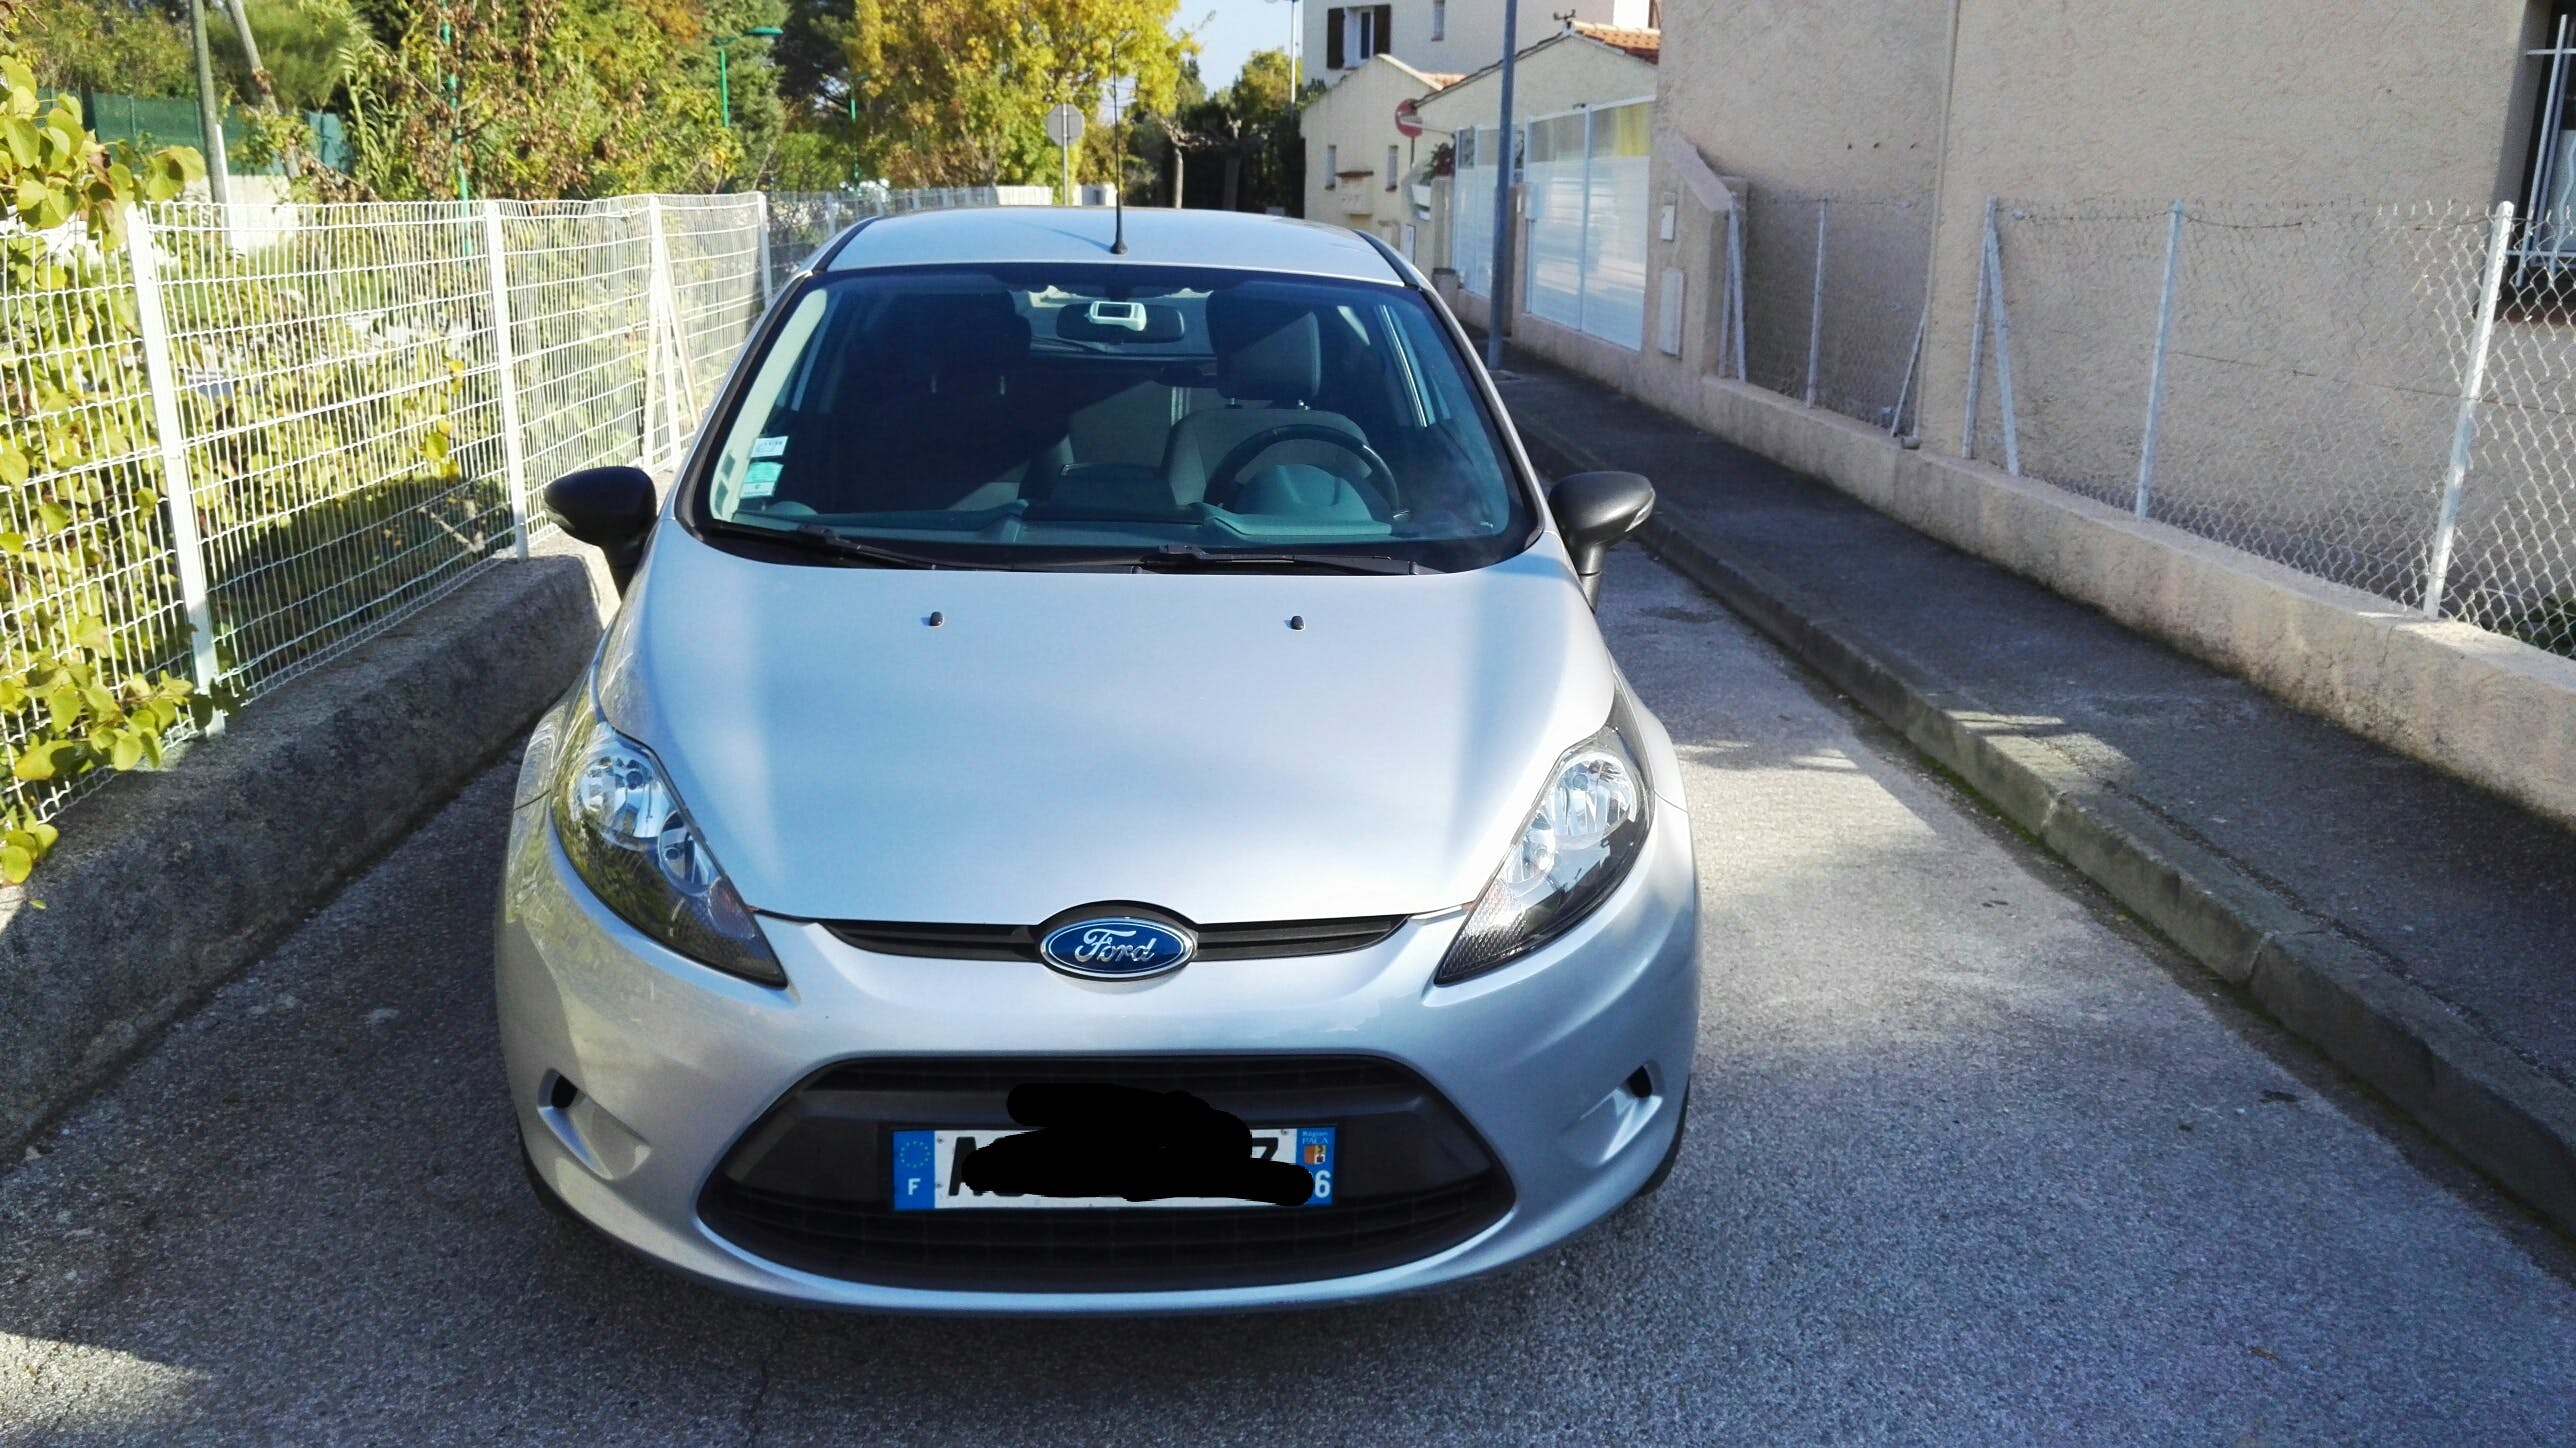 Ford Fiesta avec Climatisation